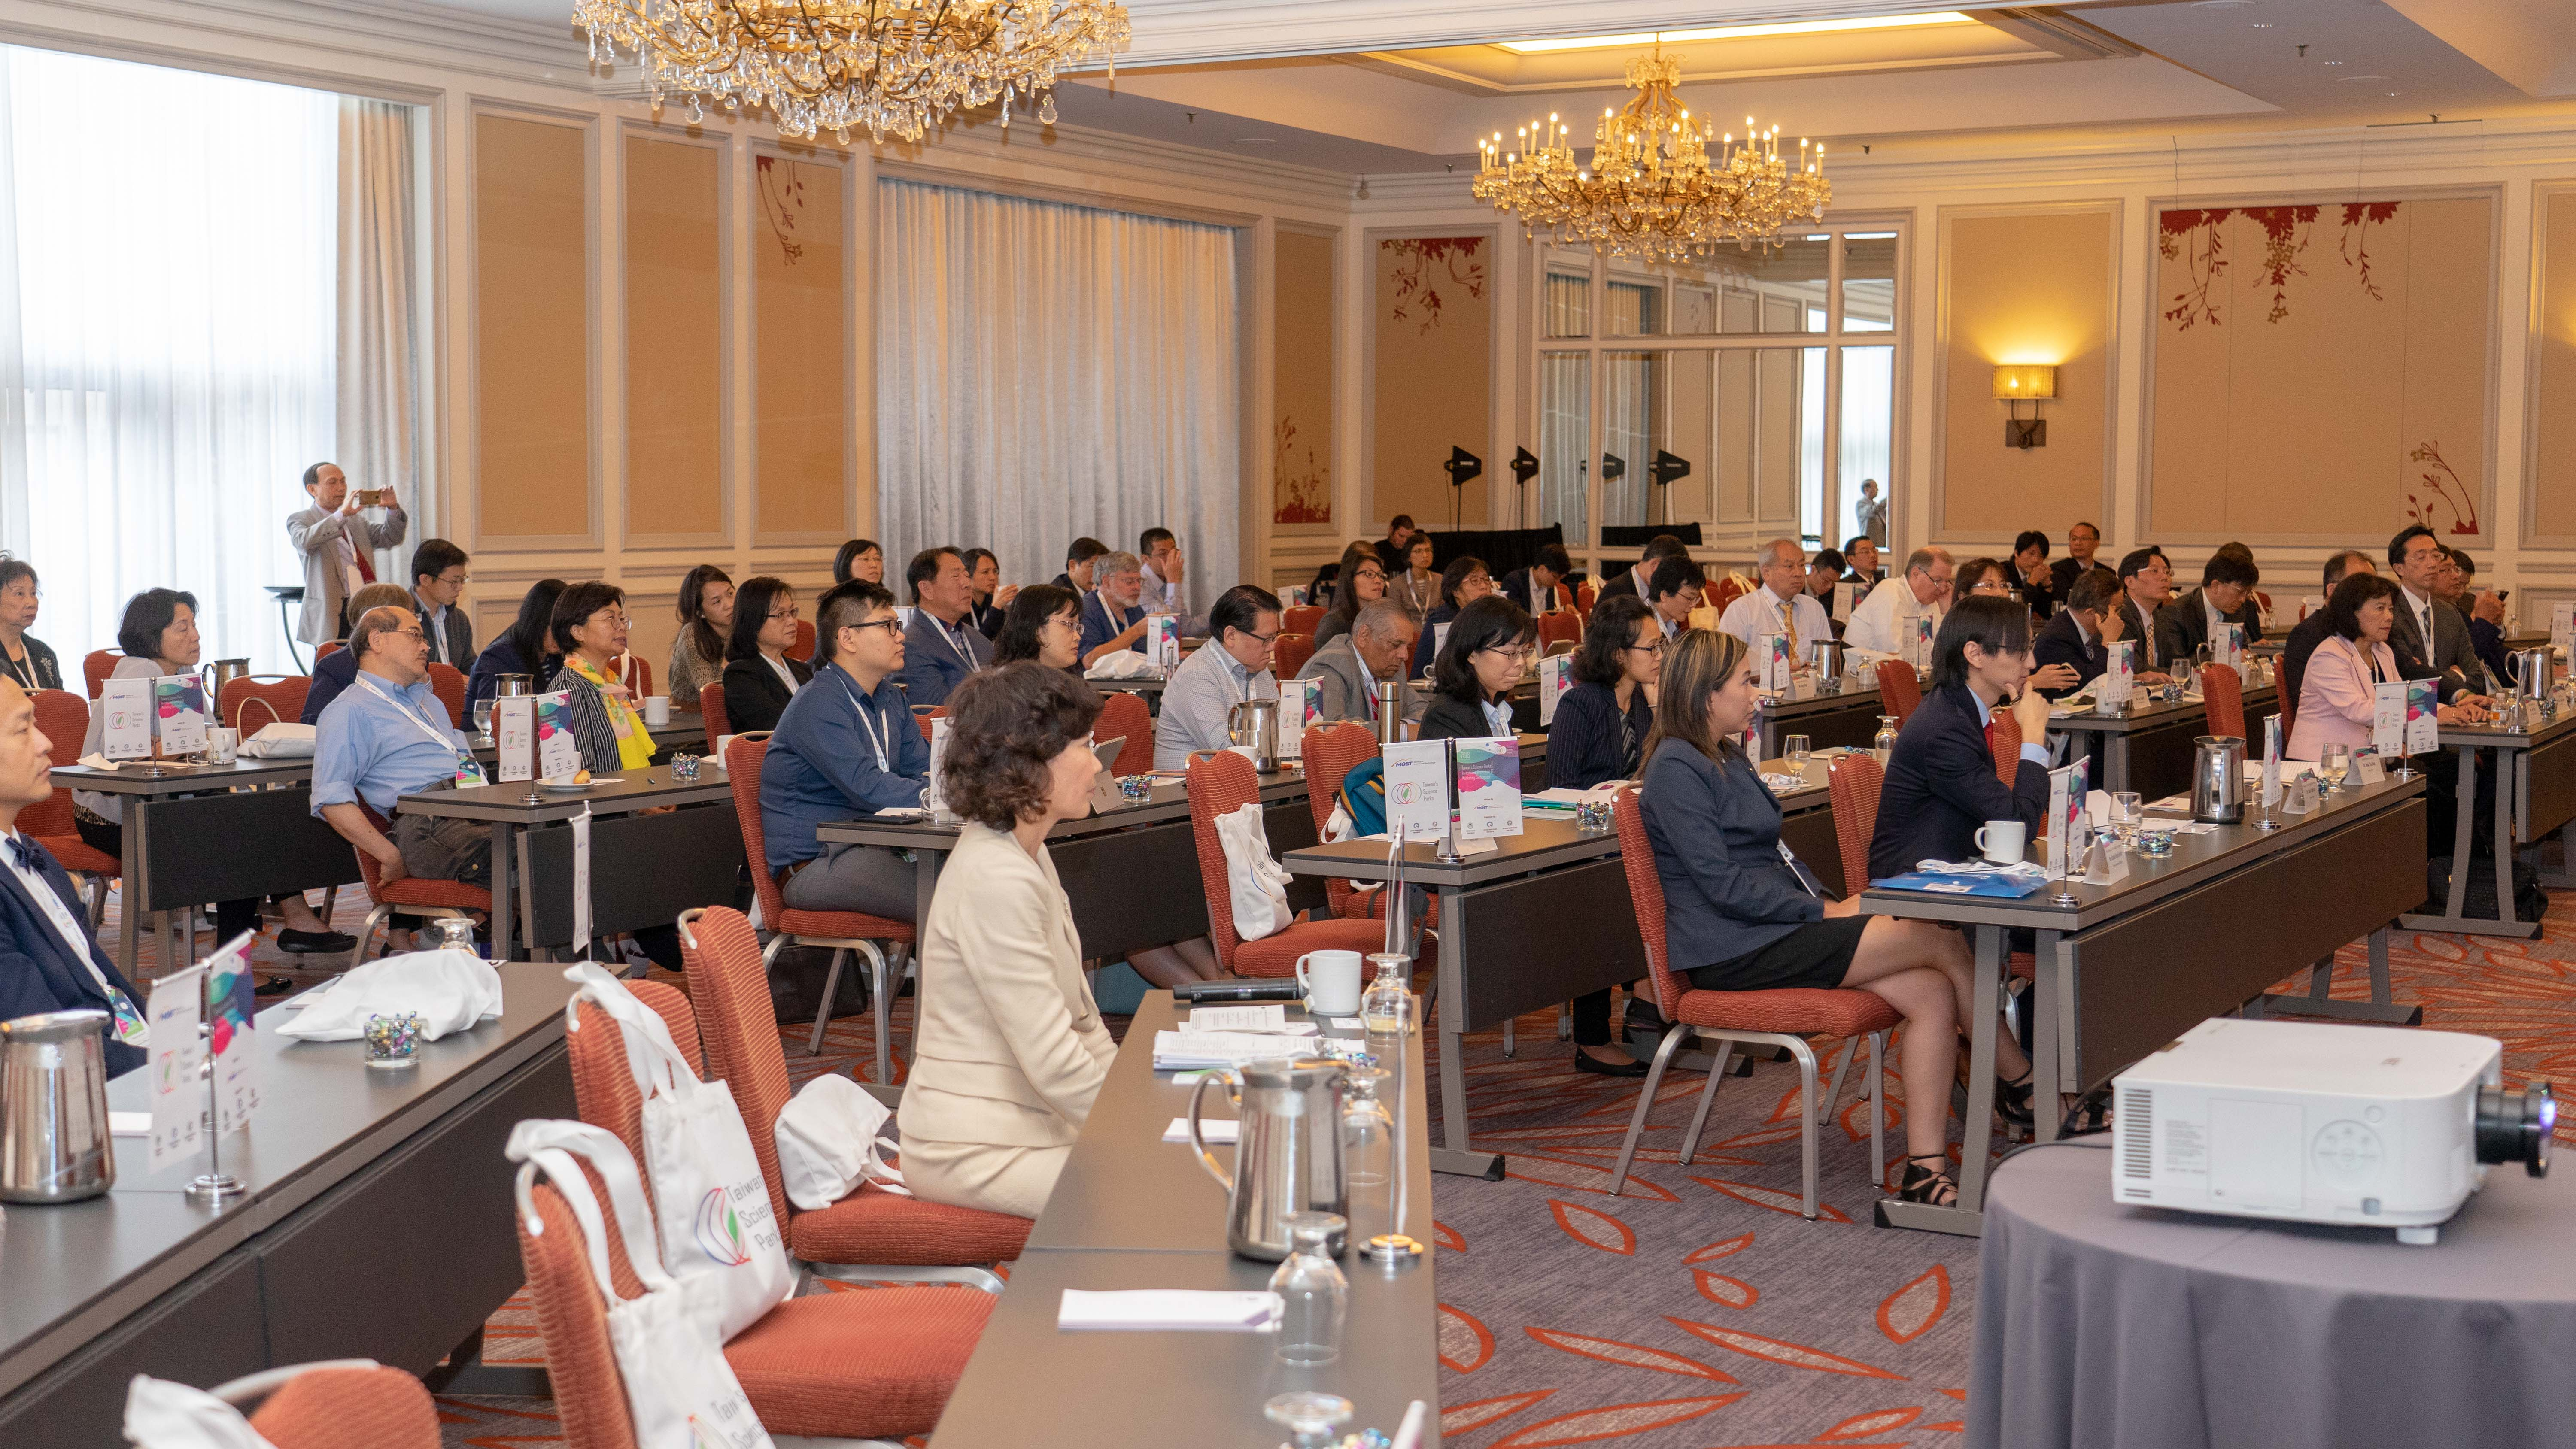 Attendees at the Taiwan Science Parks Investment Promotion and Marketing Conference in Boston